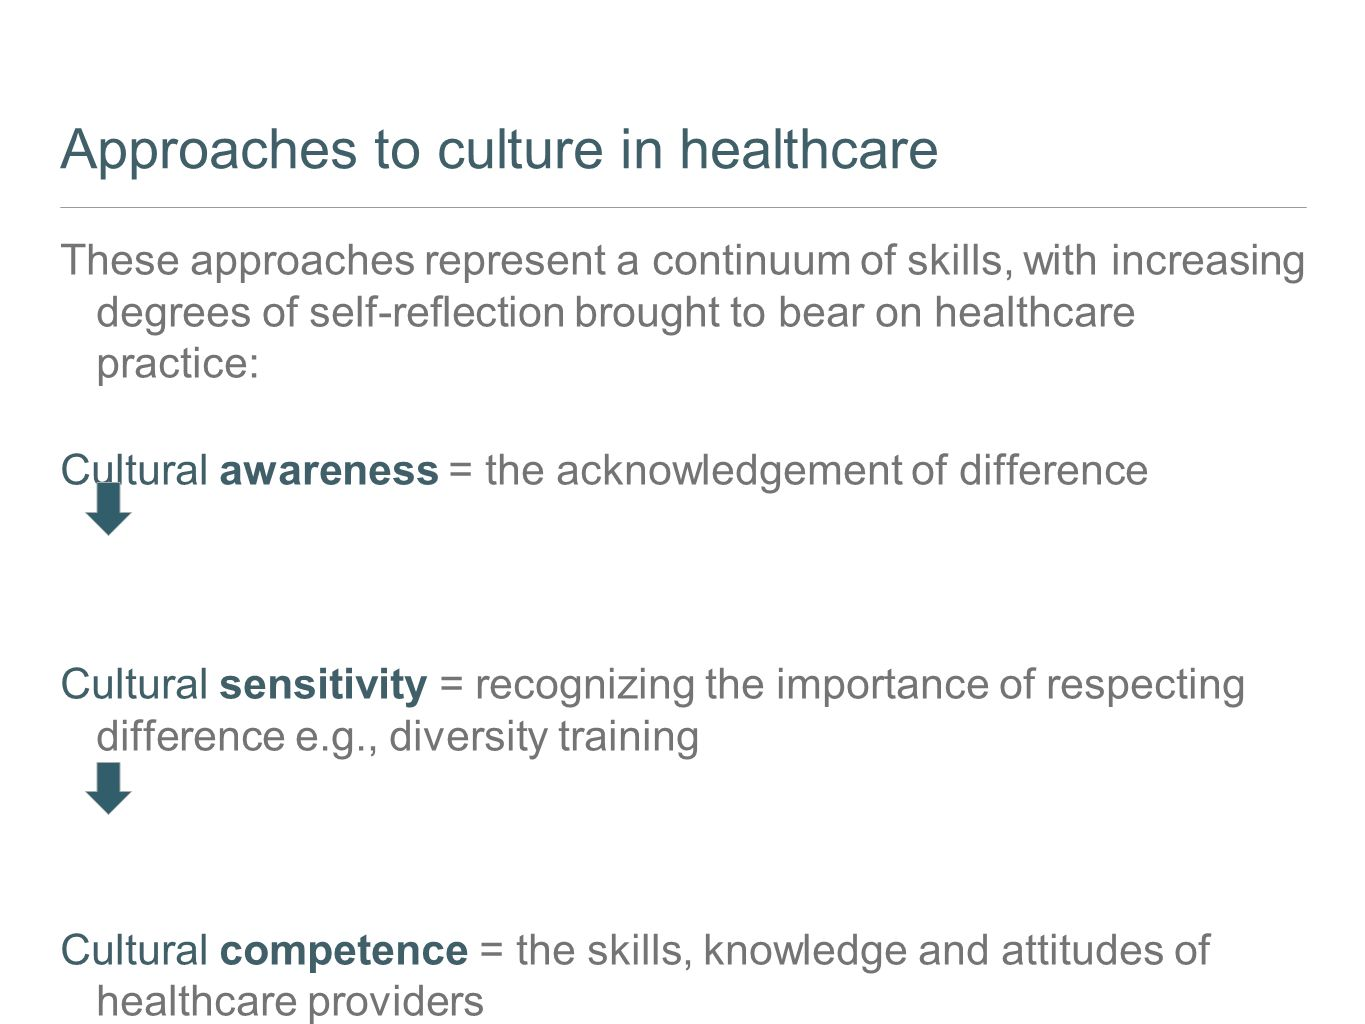 Approaches to culture in healthcare